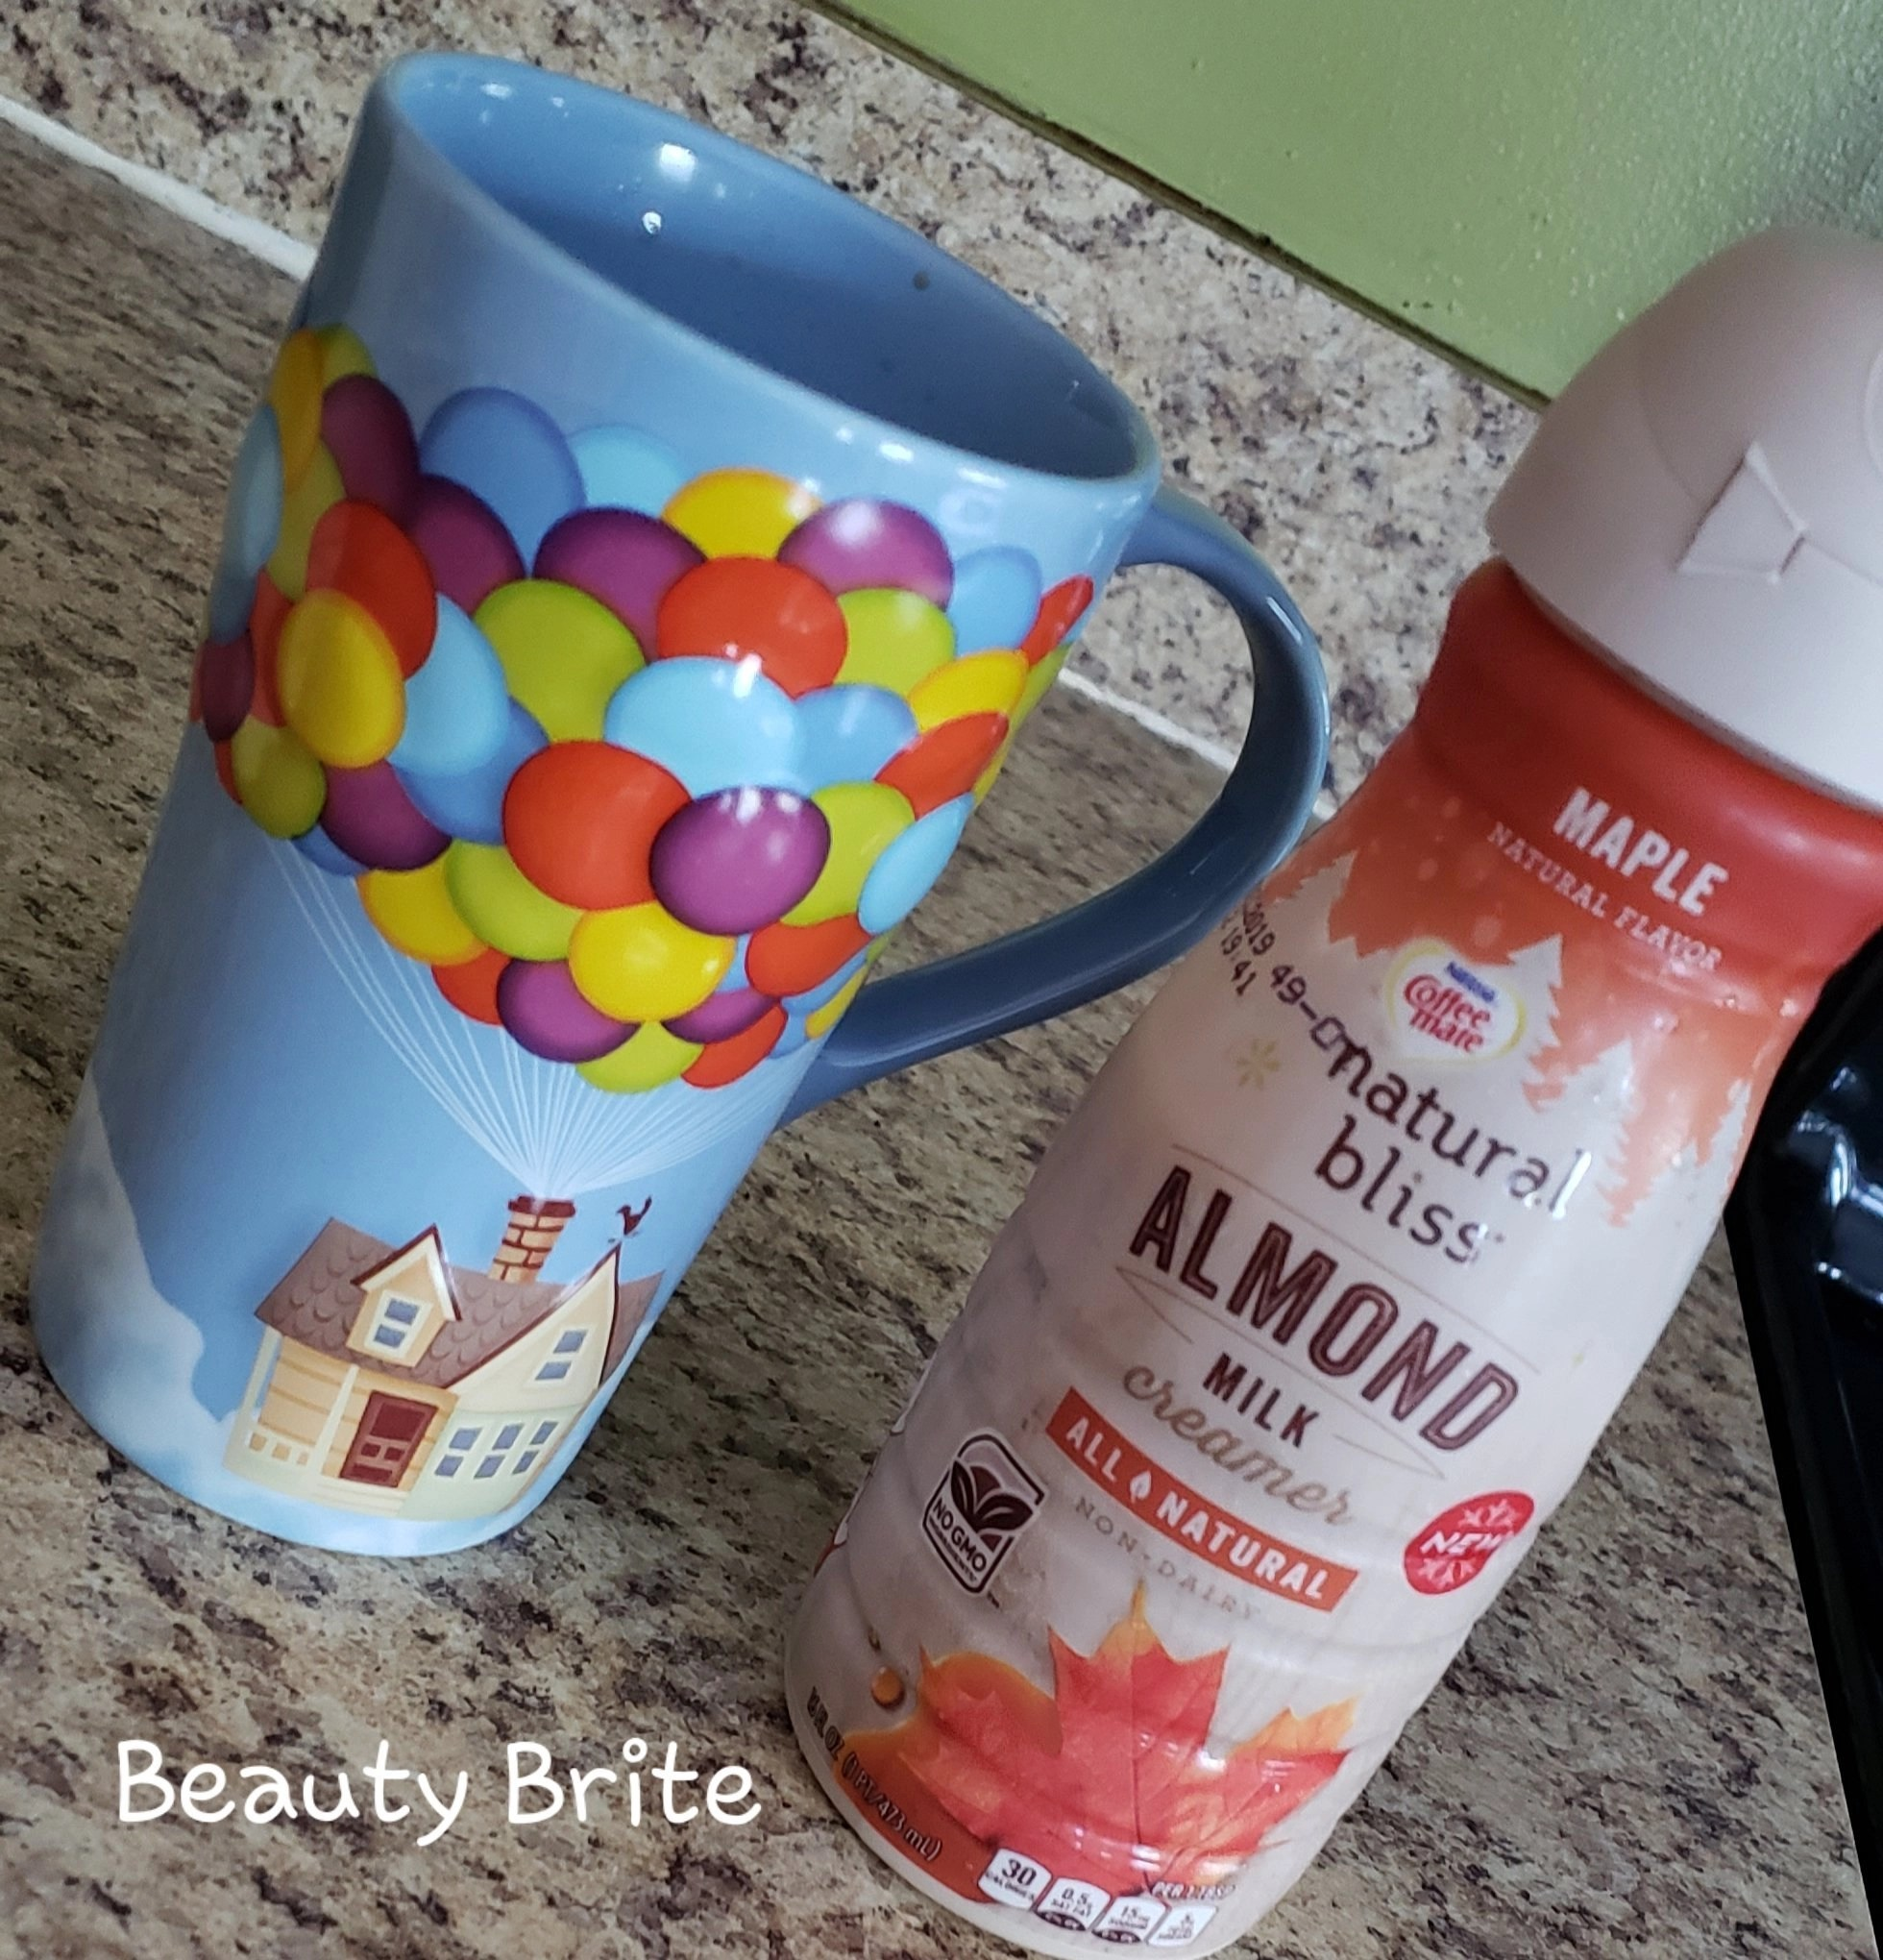 Coffee Mate Natural Bliss Almond - Maple